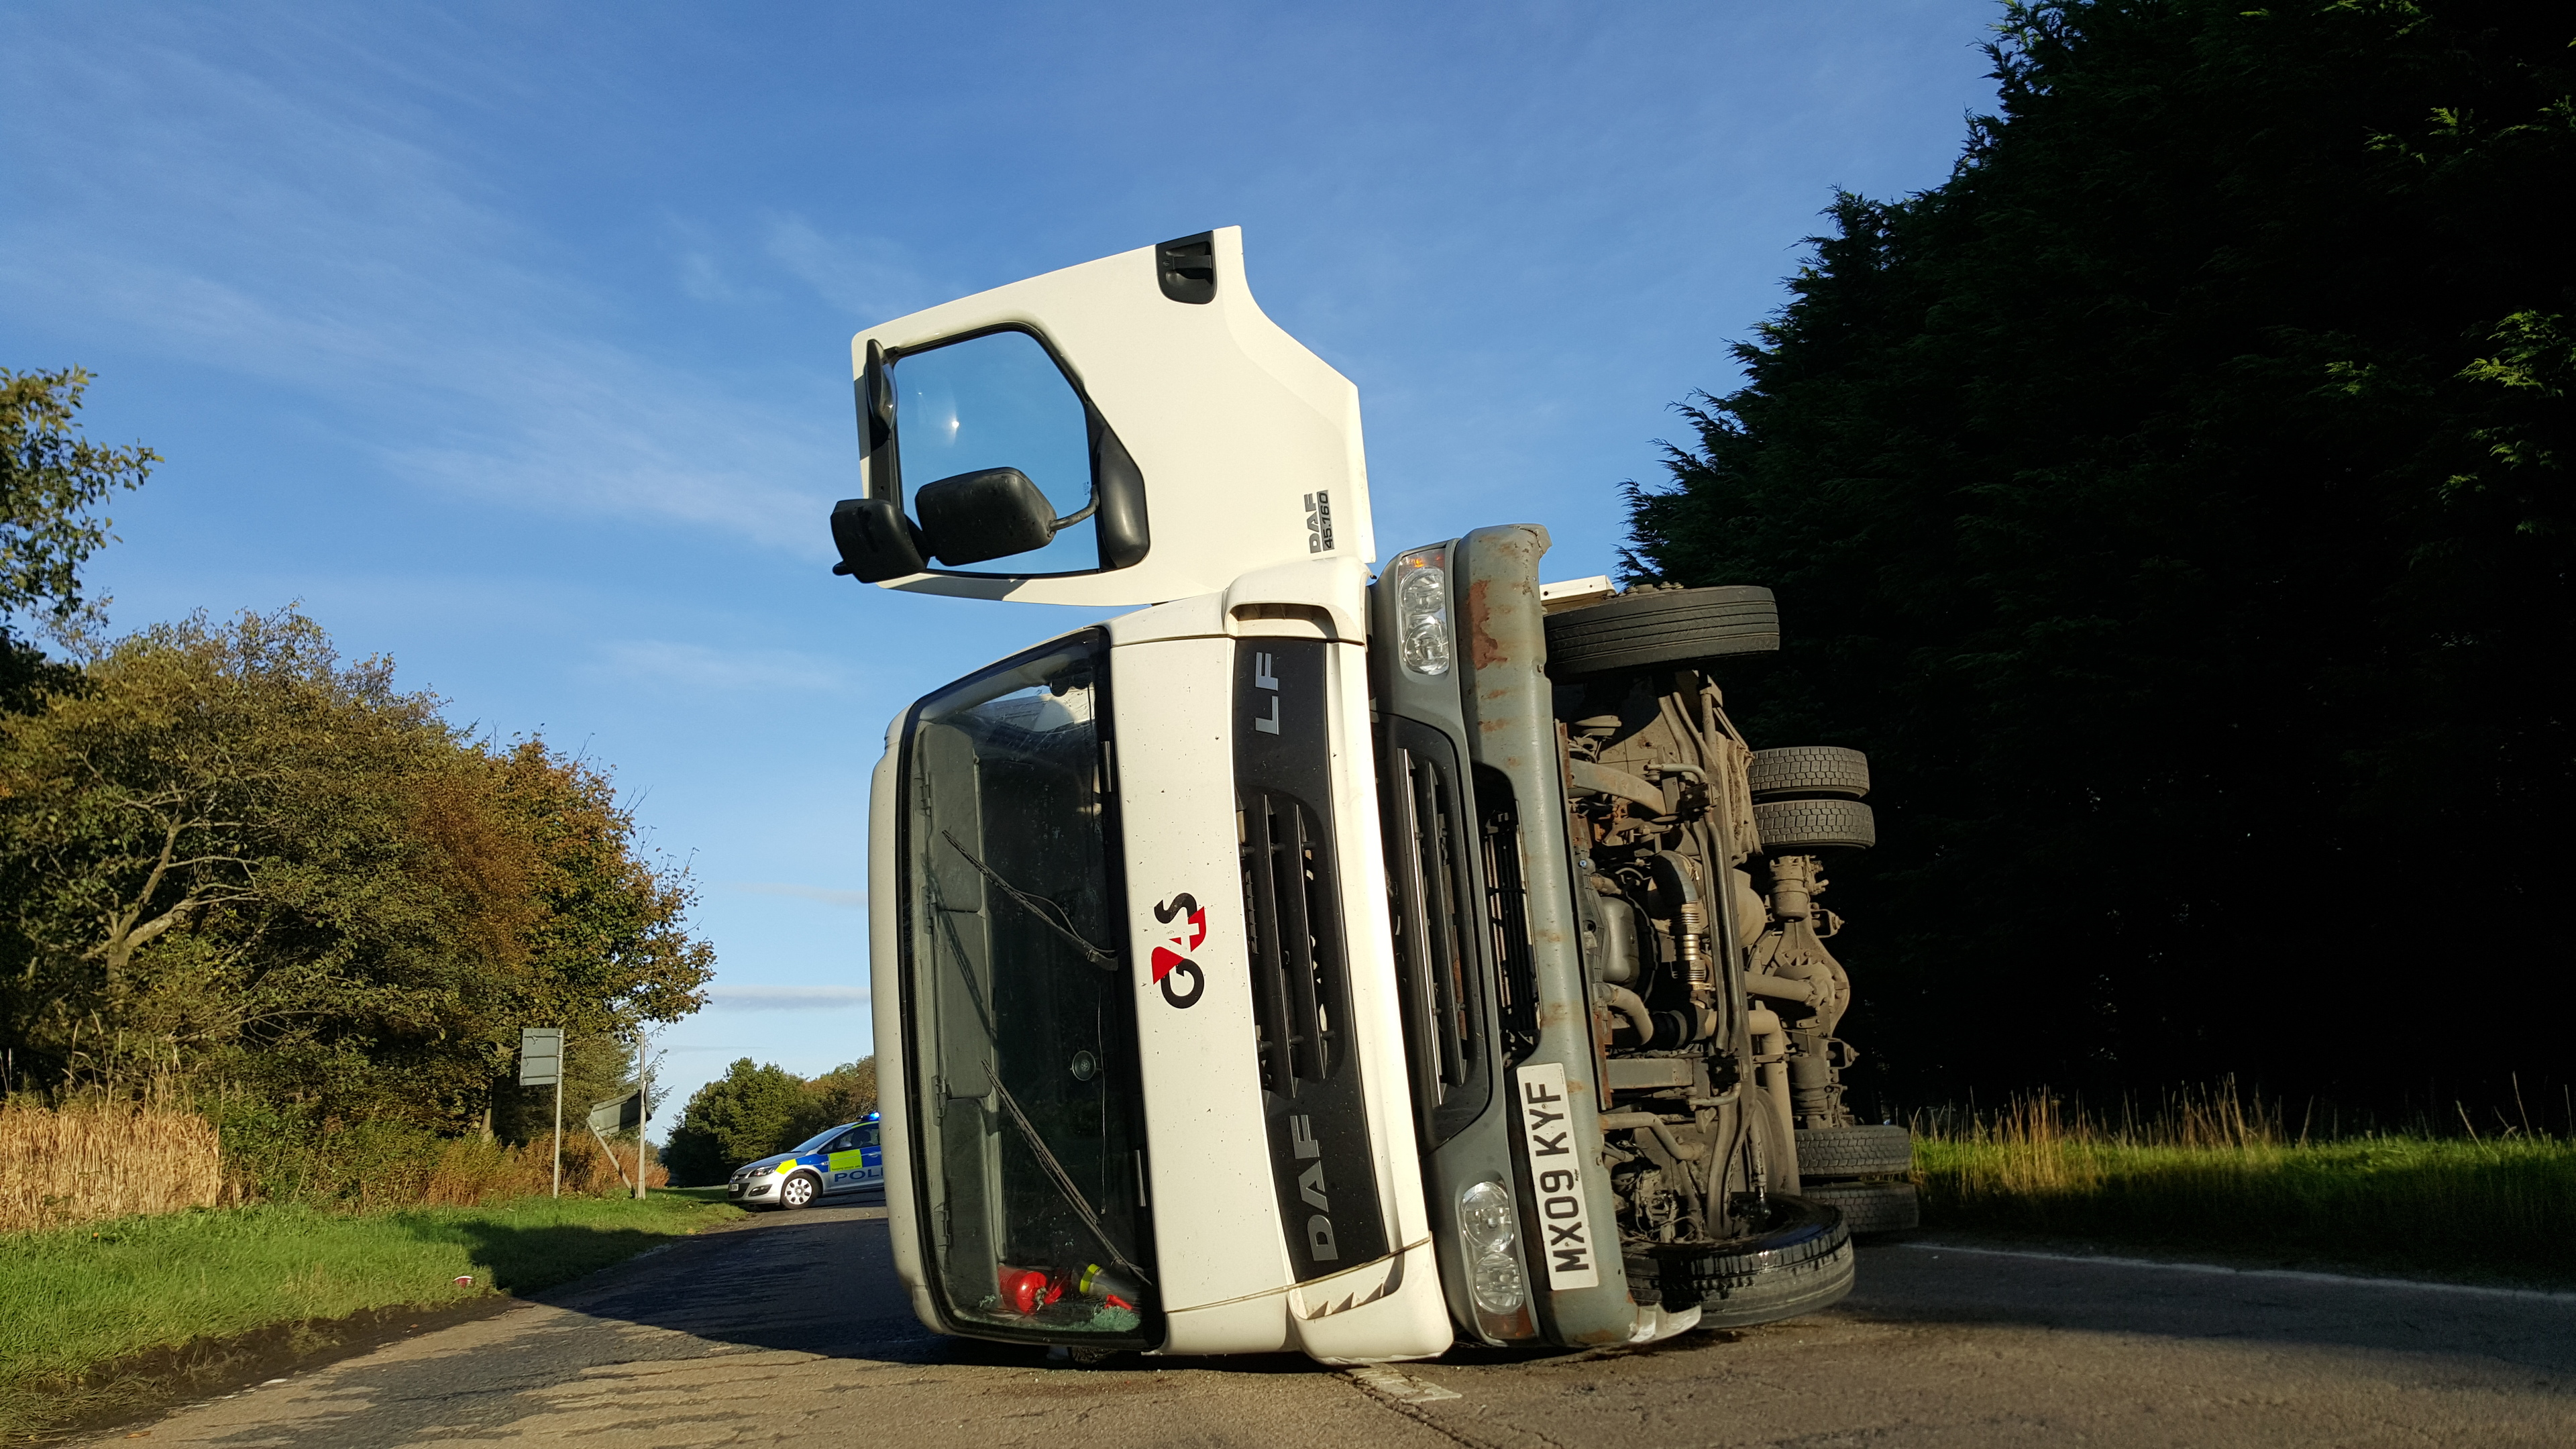 The overturned G4s vehicle